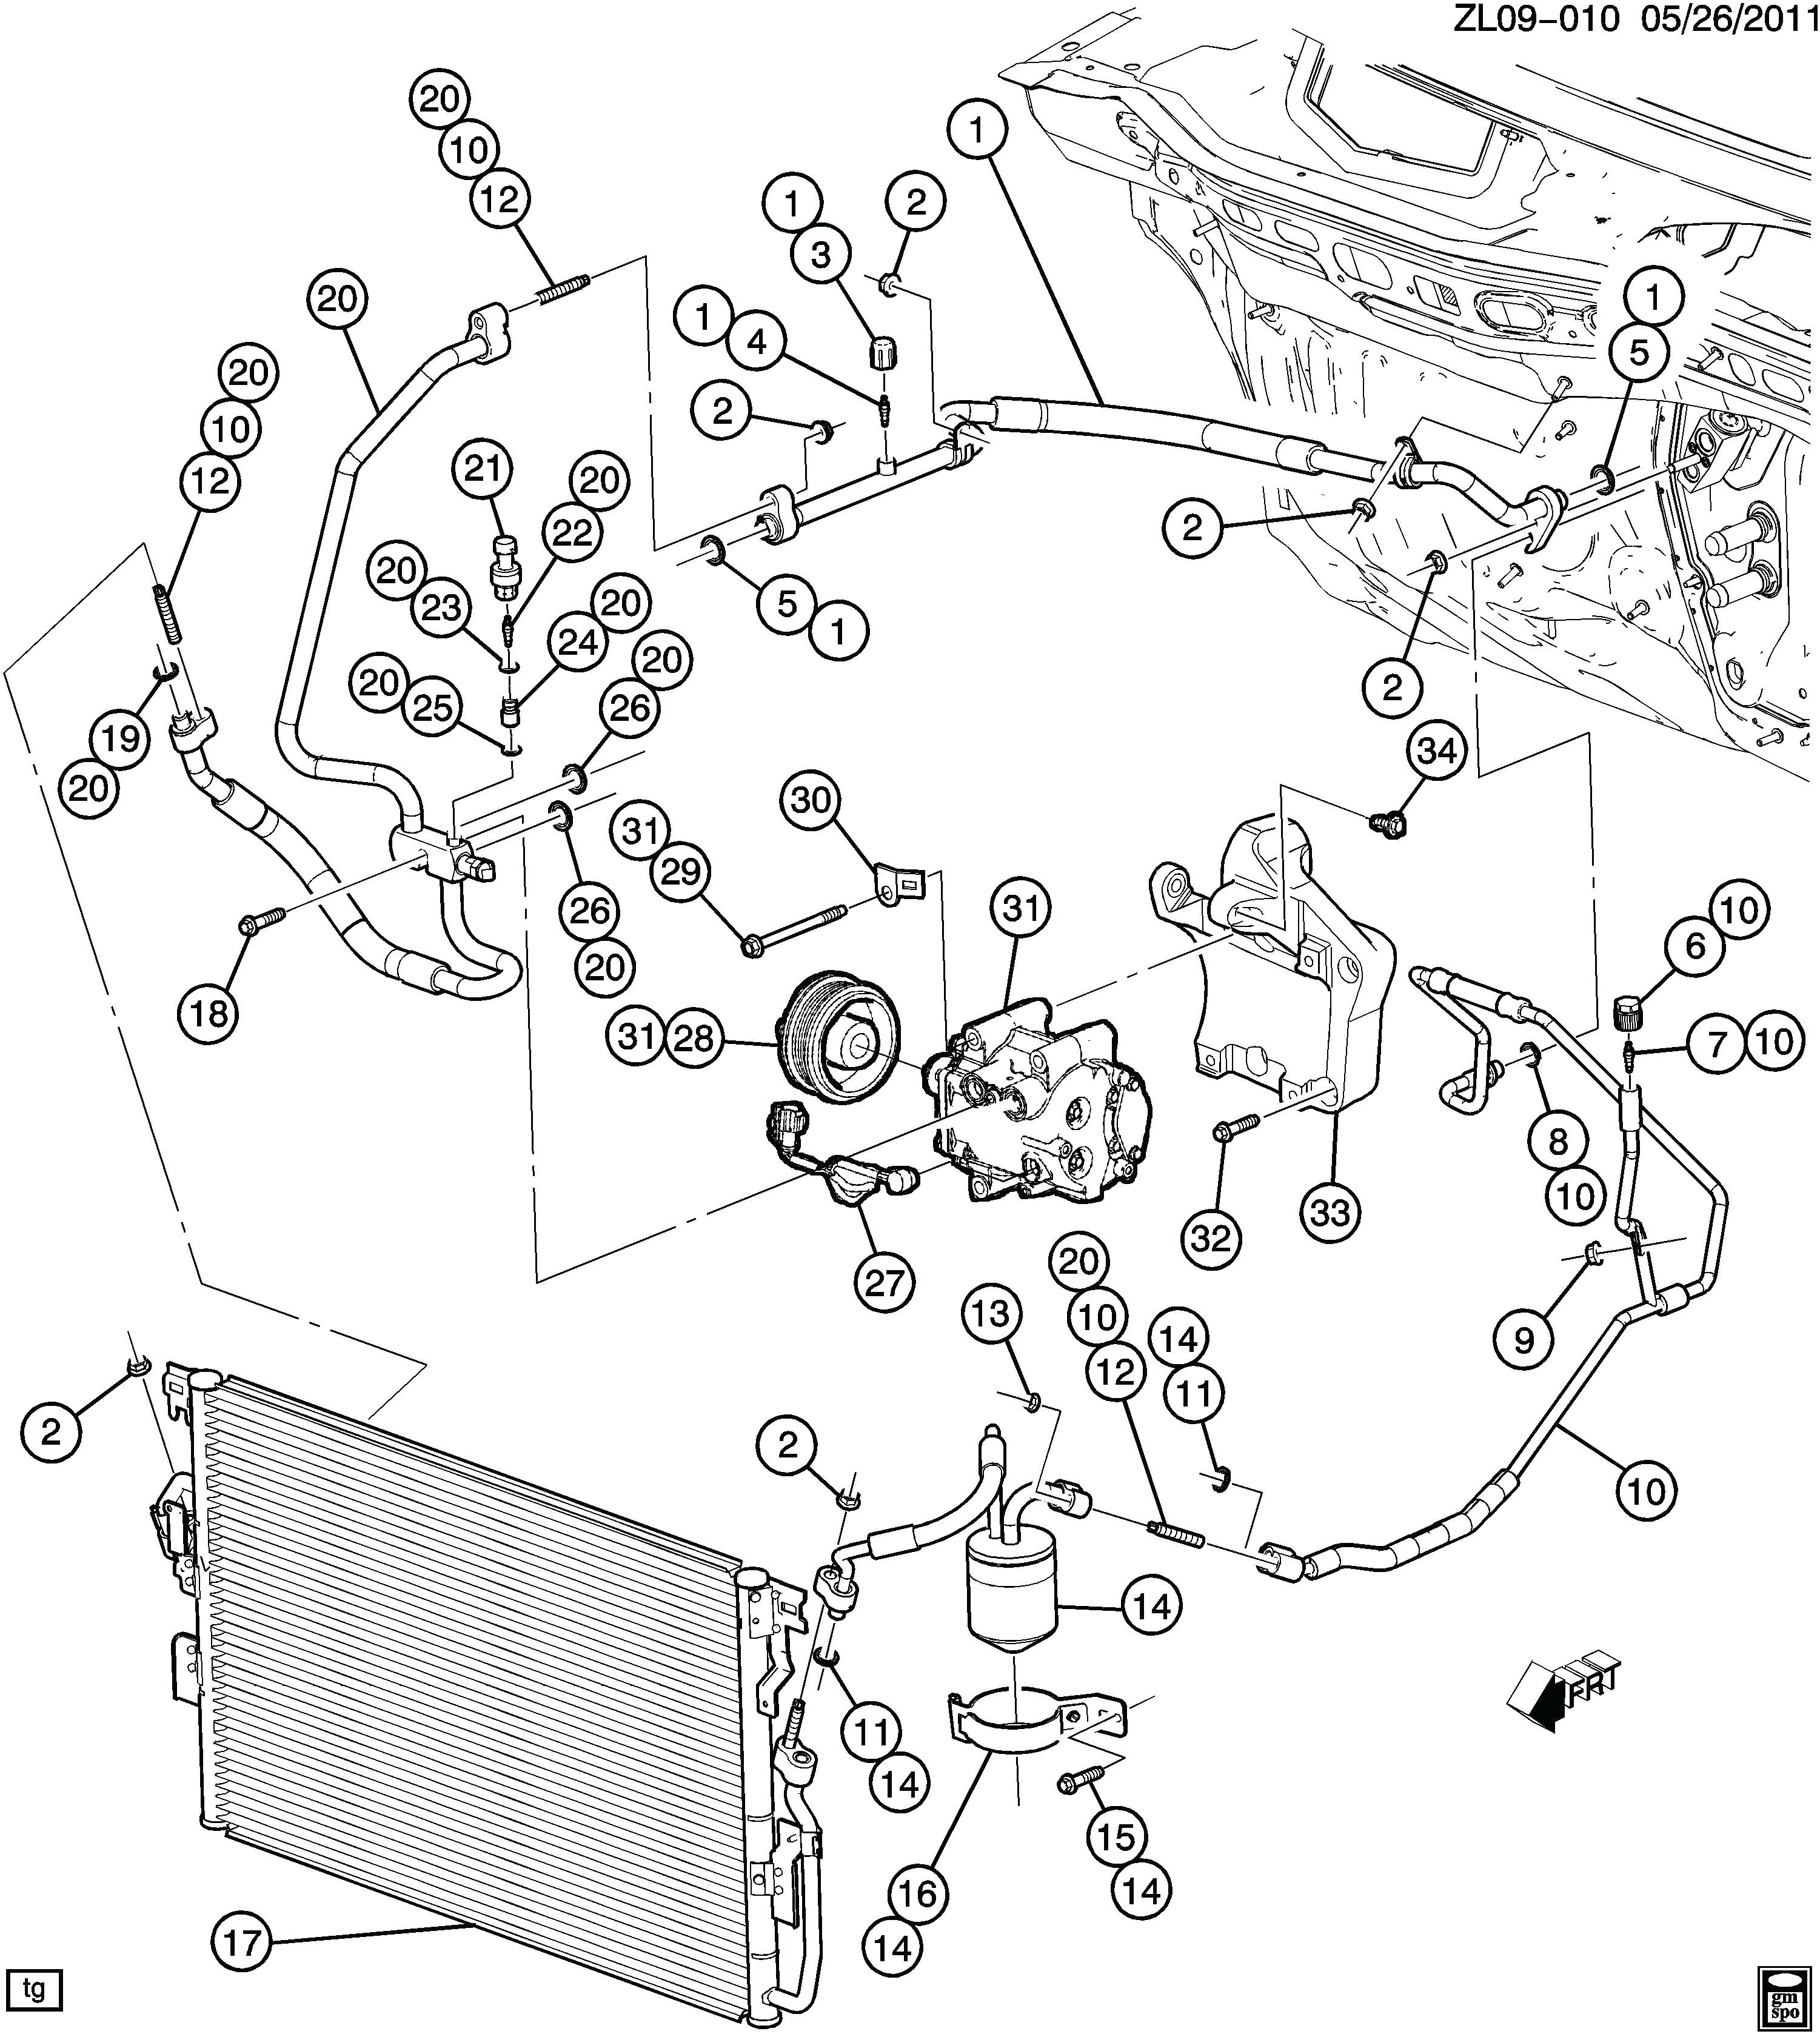 Engine Parts Drawing At Free For Personal Use Yamaha Kt100 Wiring Diagram 3002x3355 Saturn